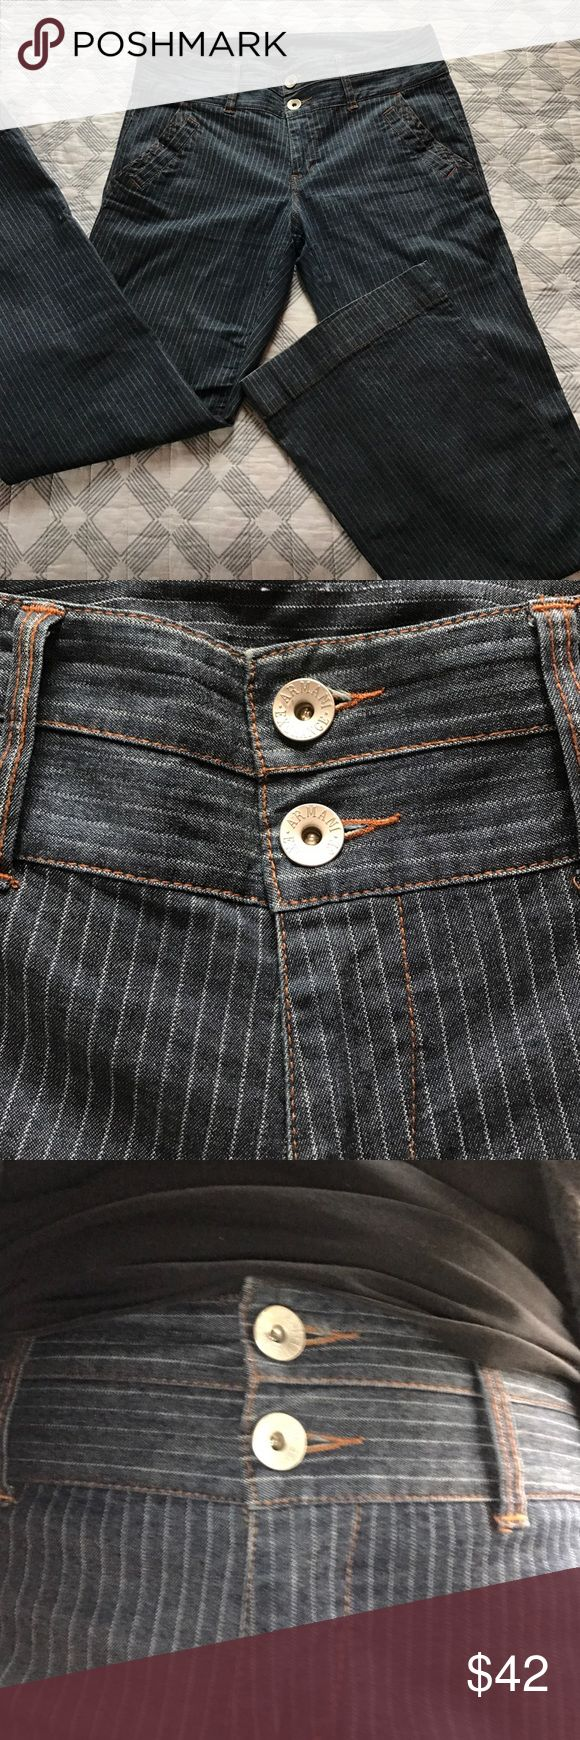 "Armani Exchange pinstriped jeans In EUC! Size and fabric content labels have been removed, but these are clearly a stretchy denim for a size 12-14. Measurements lying flat: waist 17&1/2"", inseam 33"". Sits high on the waist (as shown). Stretchy material and very comfortable. Boot cut style. Armani Exchange Jeans Boot Cut"